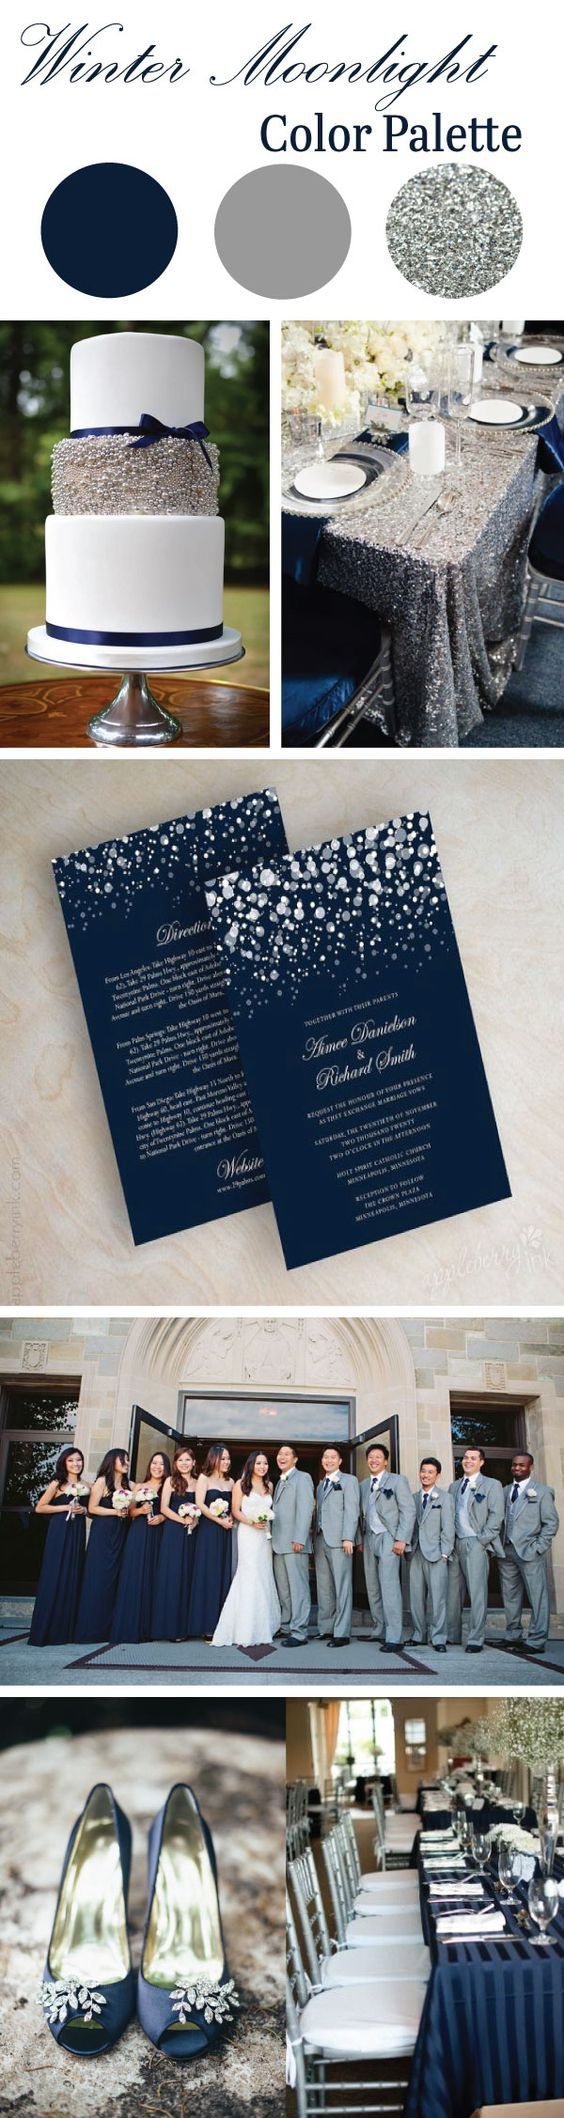 Winter Moonlight Wedding Color Palette | LinenTablecloth Blog #colorpalette # wedding #events: